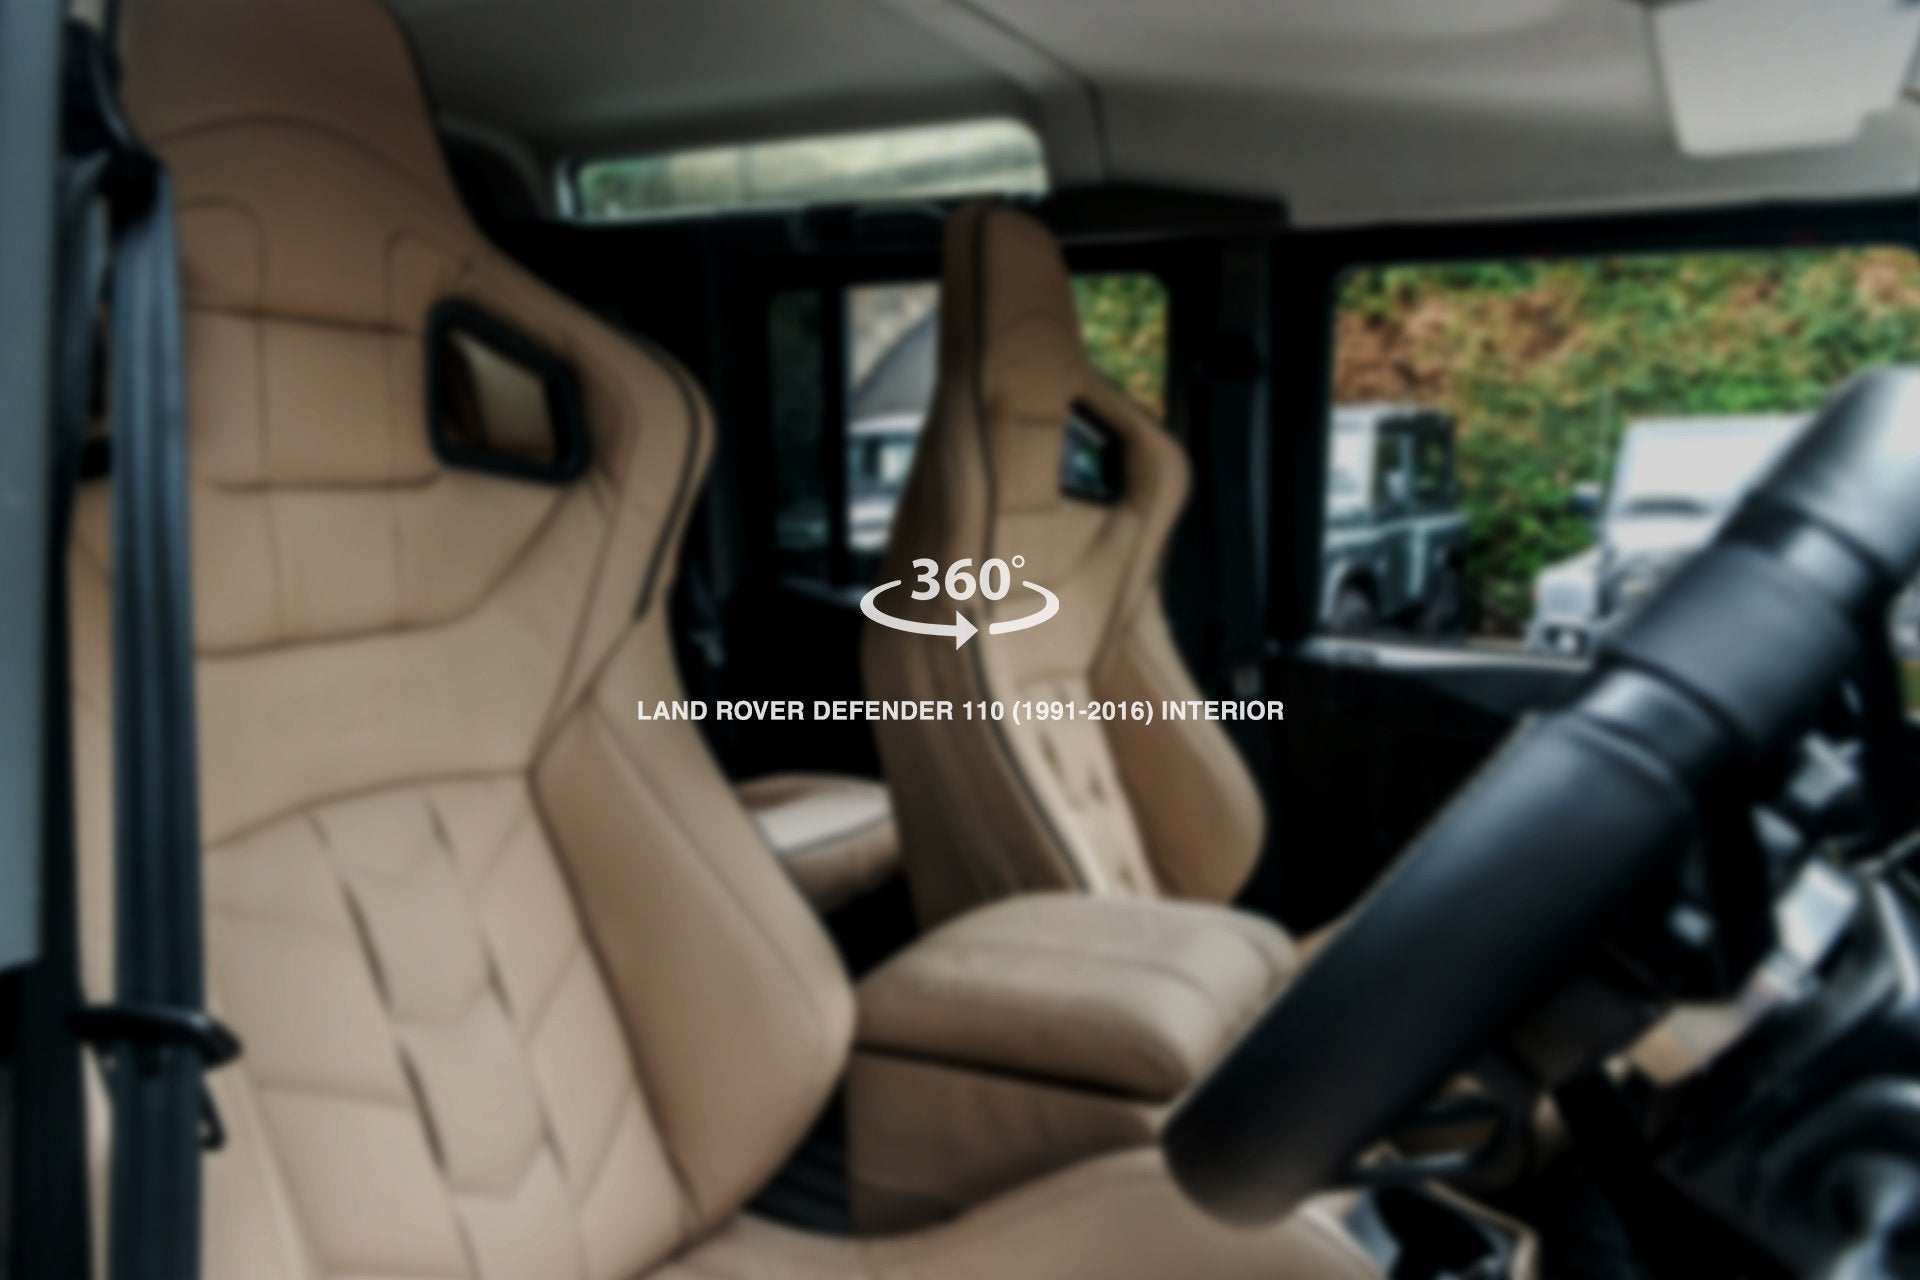 Land Rover Defender 110 (1991-2016) Sports Interior - Project Kahn